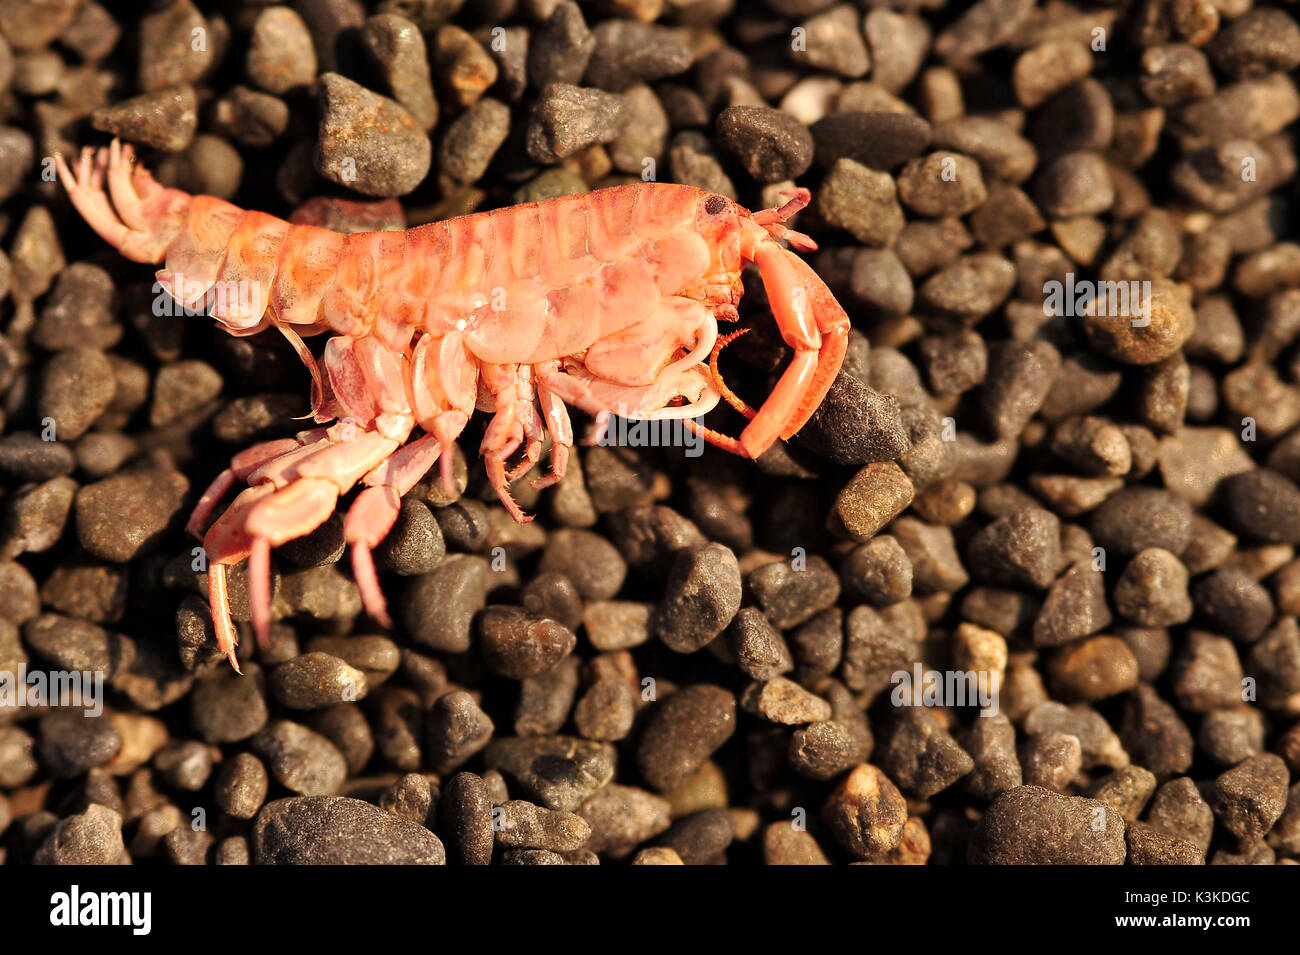 A circa 1 cm Krab on the beach of the Pacific. - Stock Image